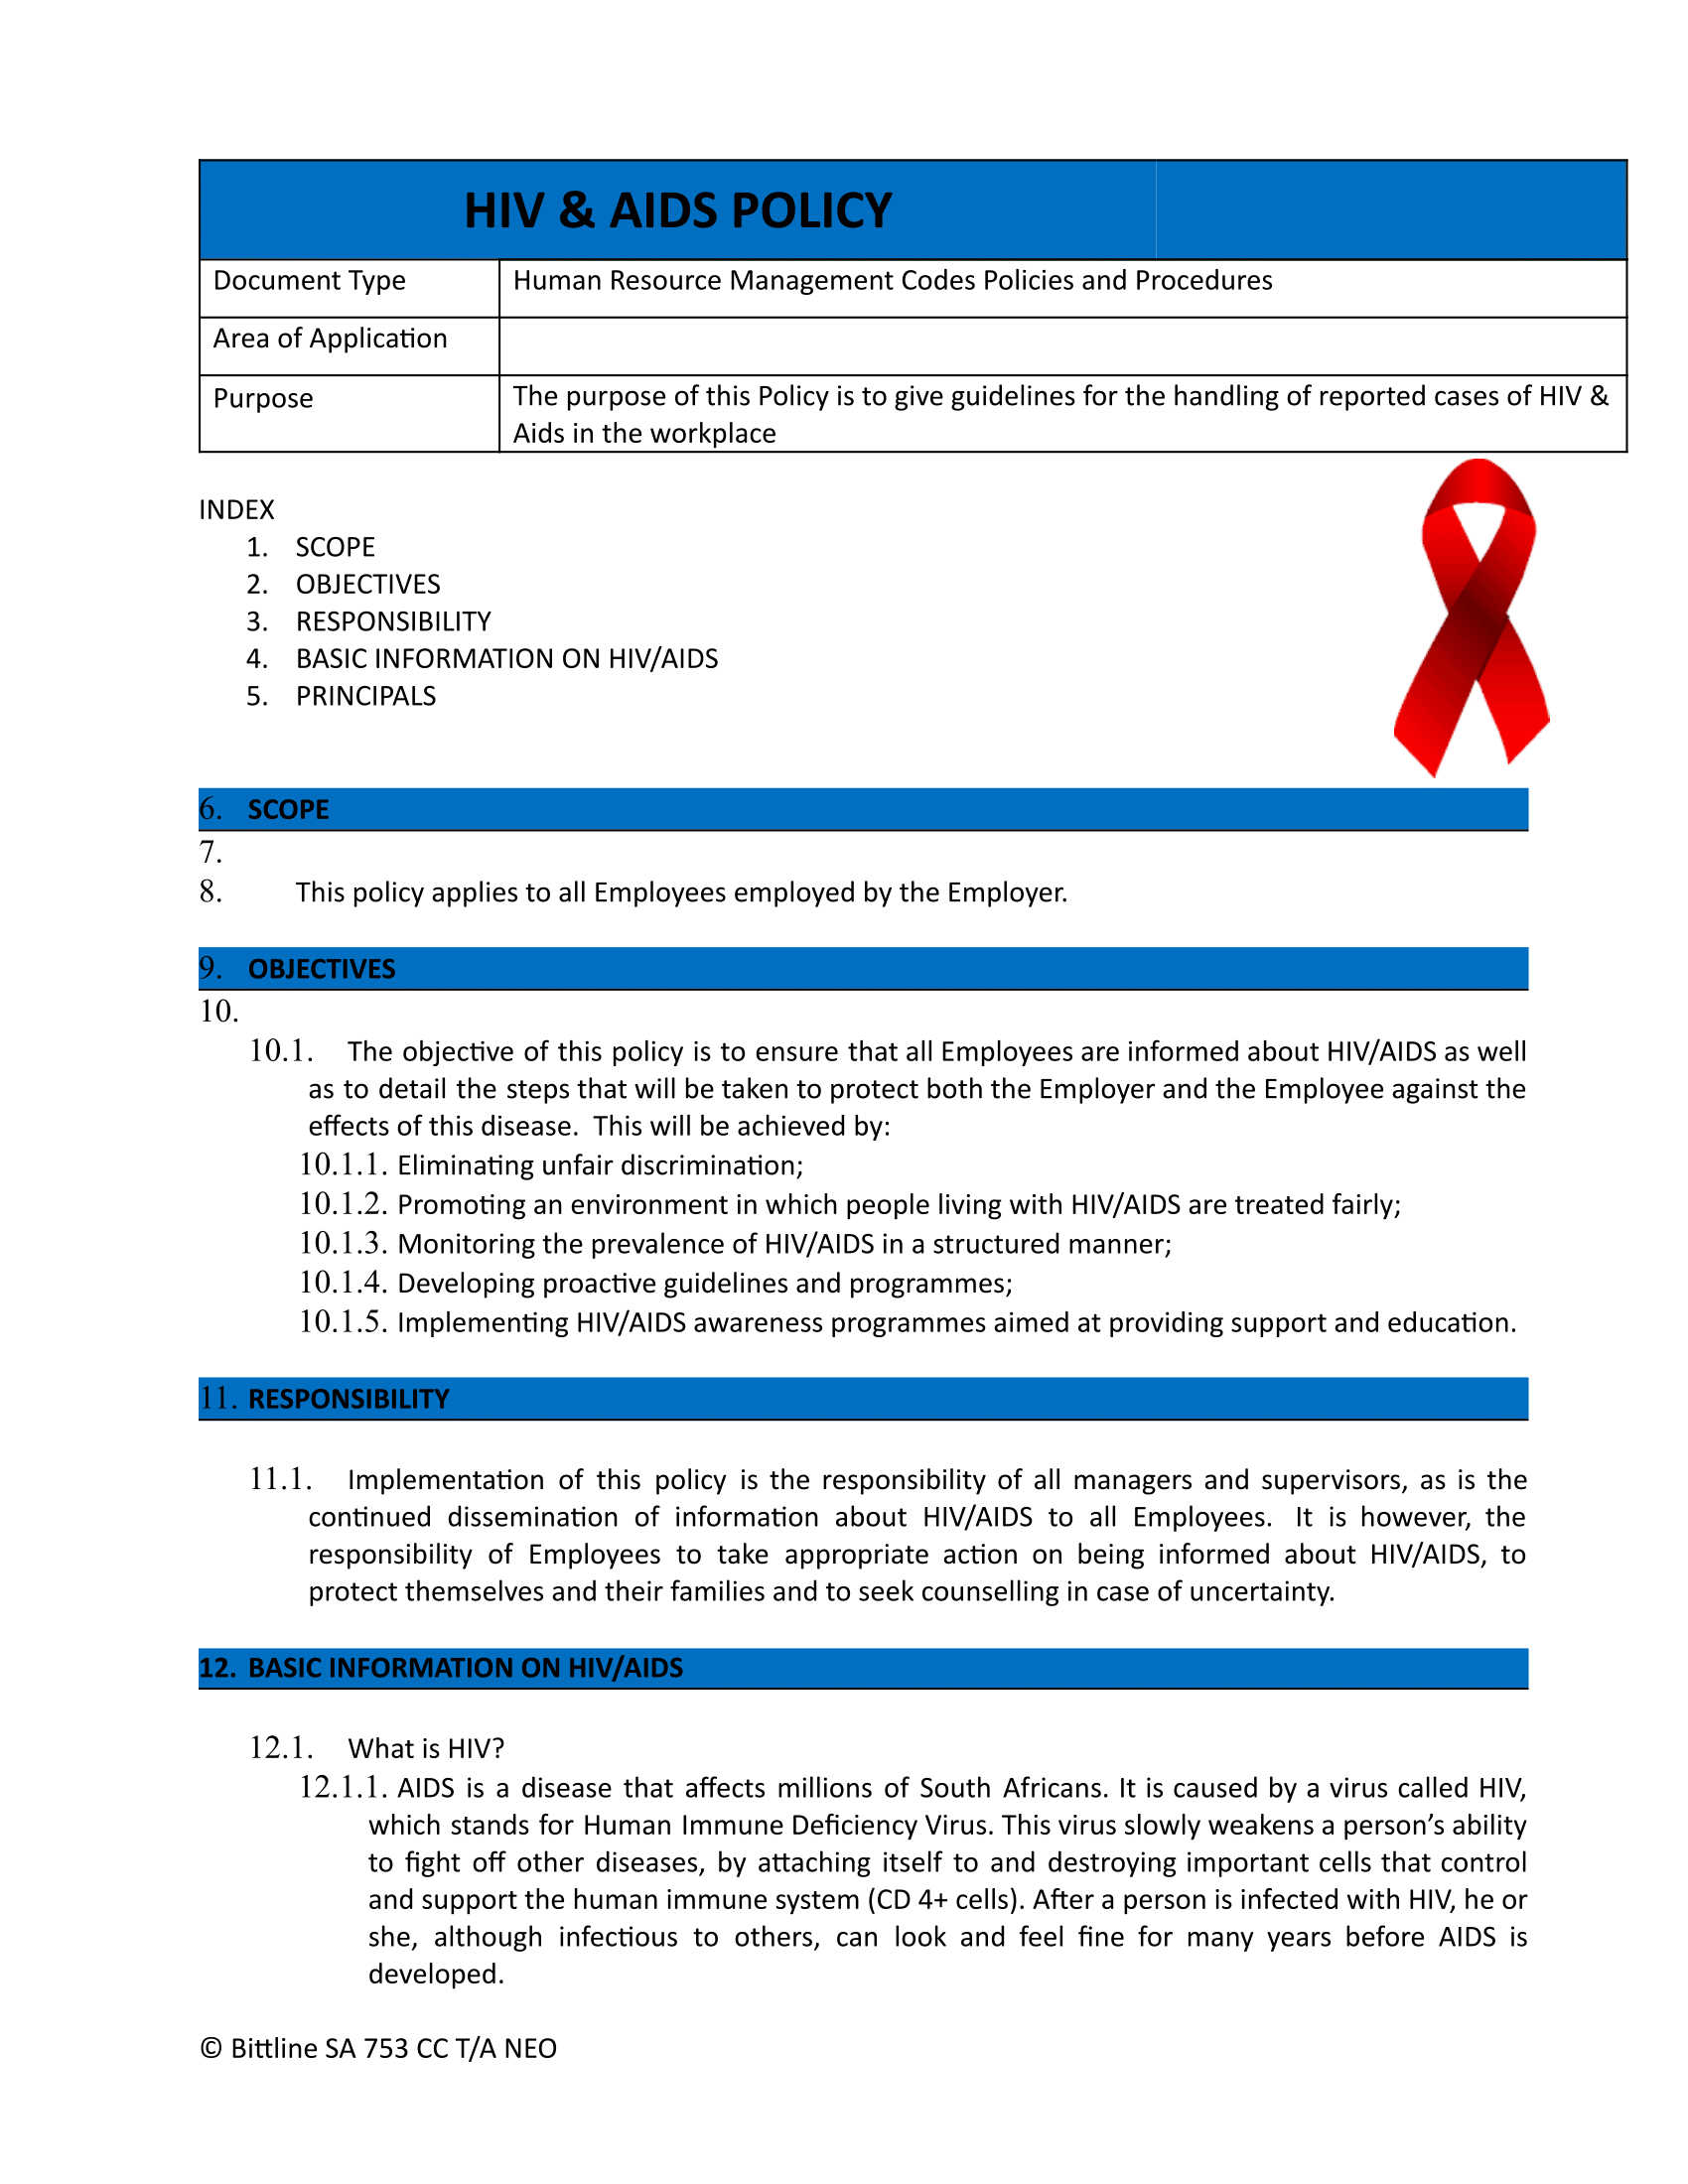 CP-006-HIV-AIDS-POLICY - Google Docs-1